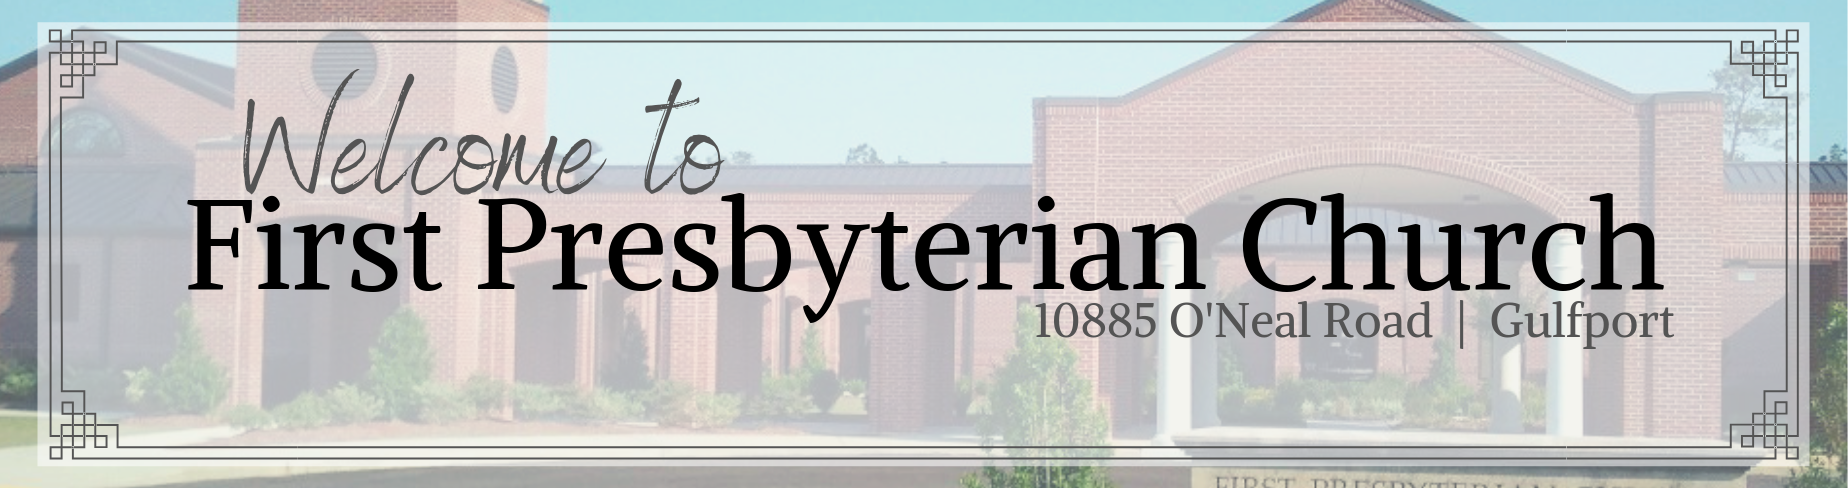 About First Presbyterian Church banner